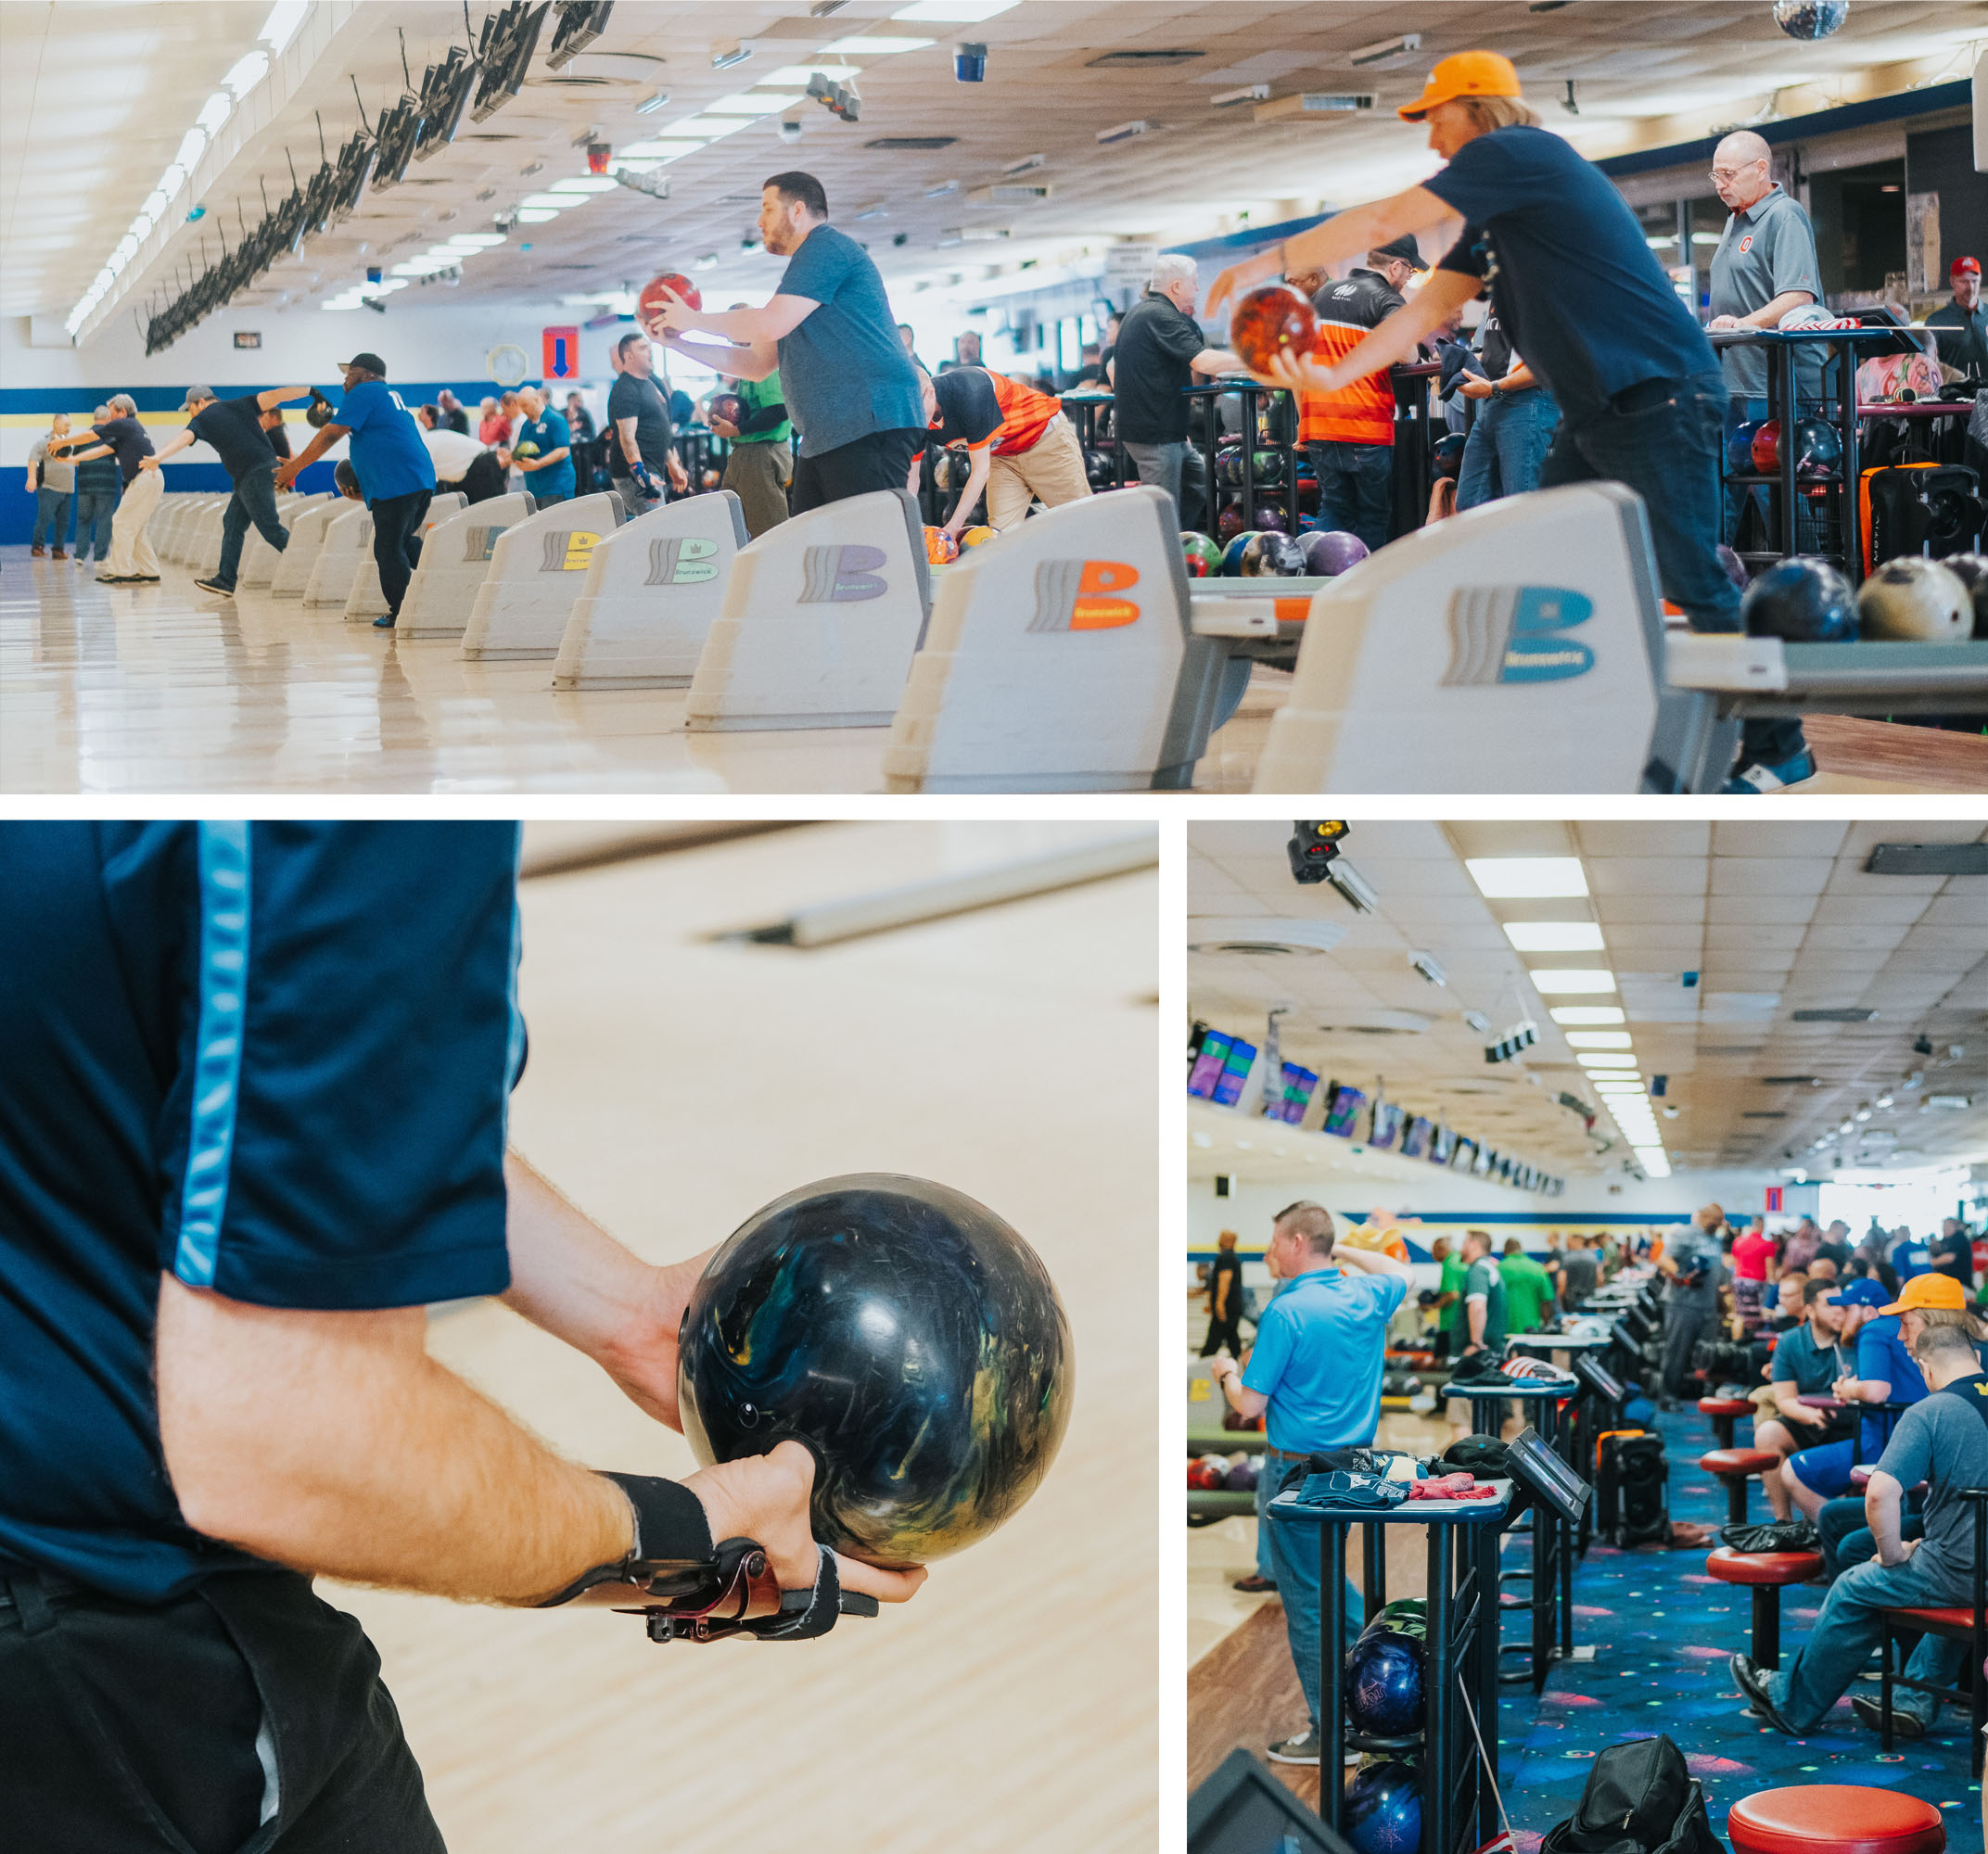 Bowlers at the United States Bowling Congress Michigan State Championship